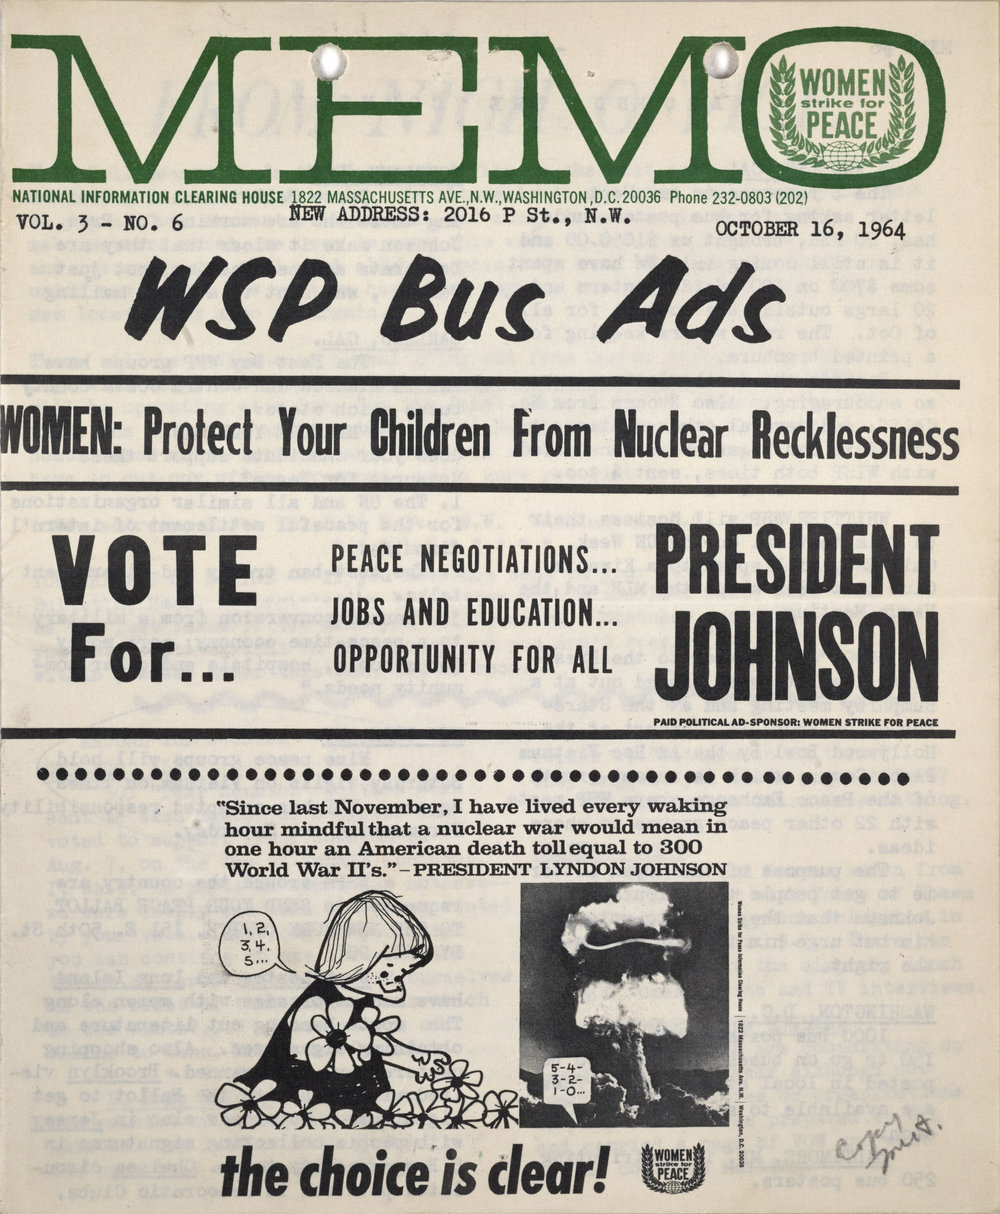 Women's Strike for Peace MEMO Newsletter, October 16, 1964